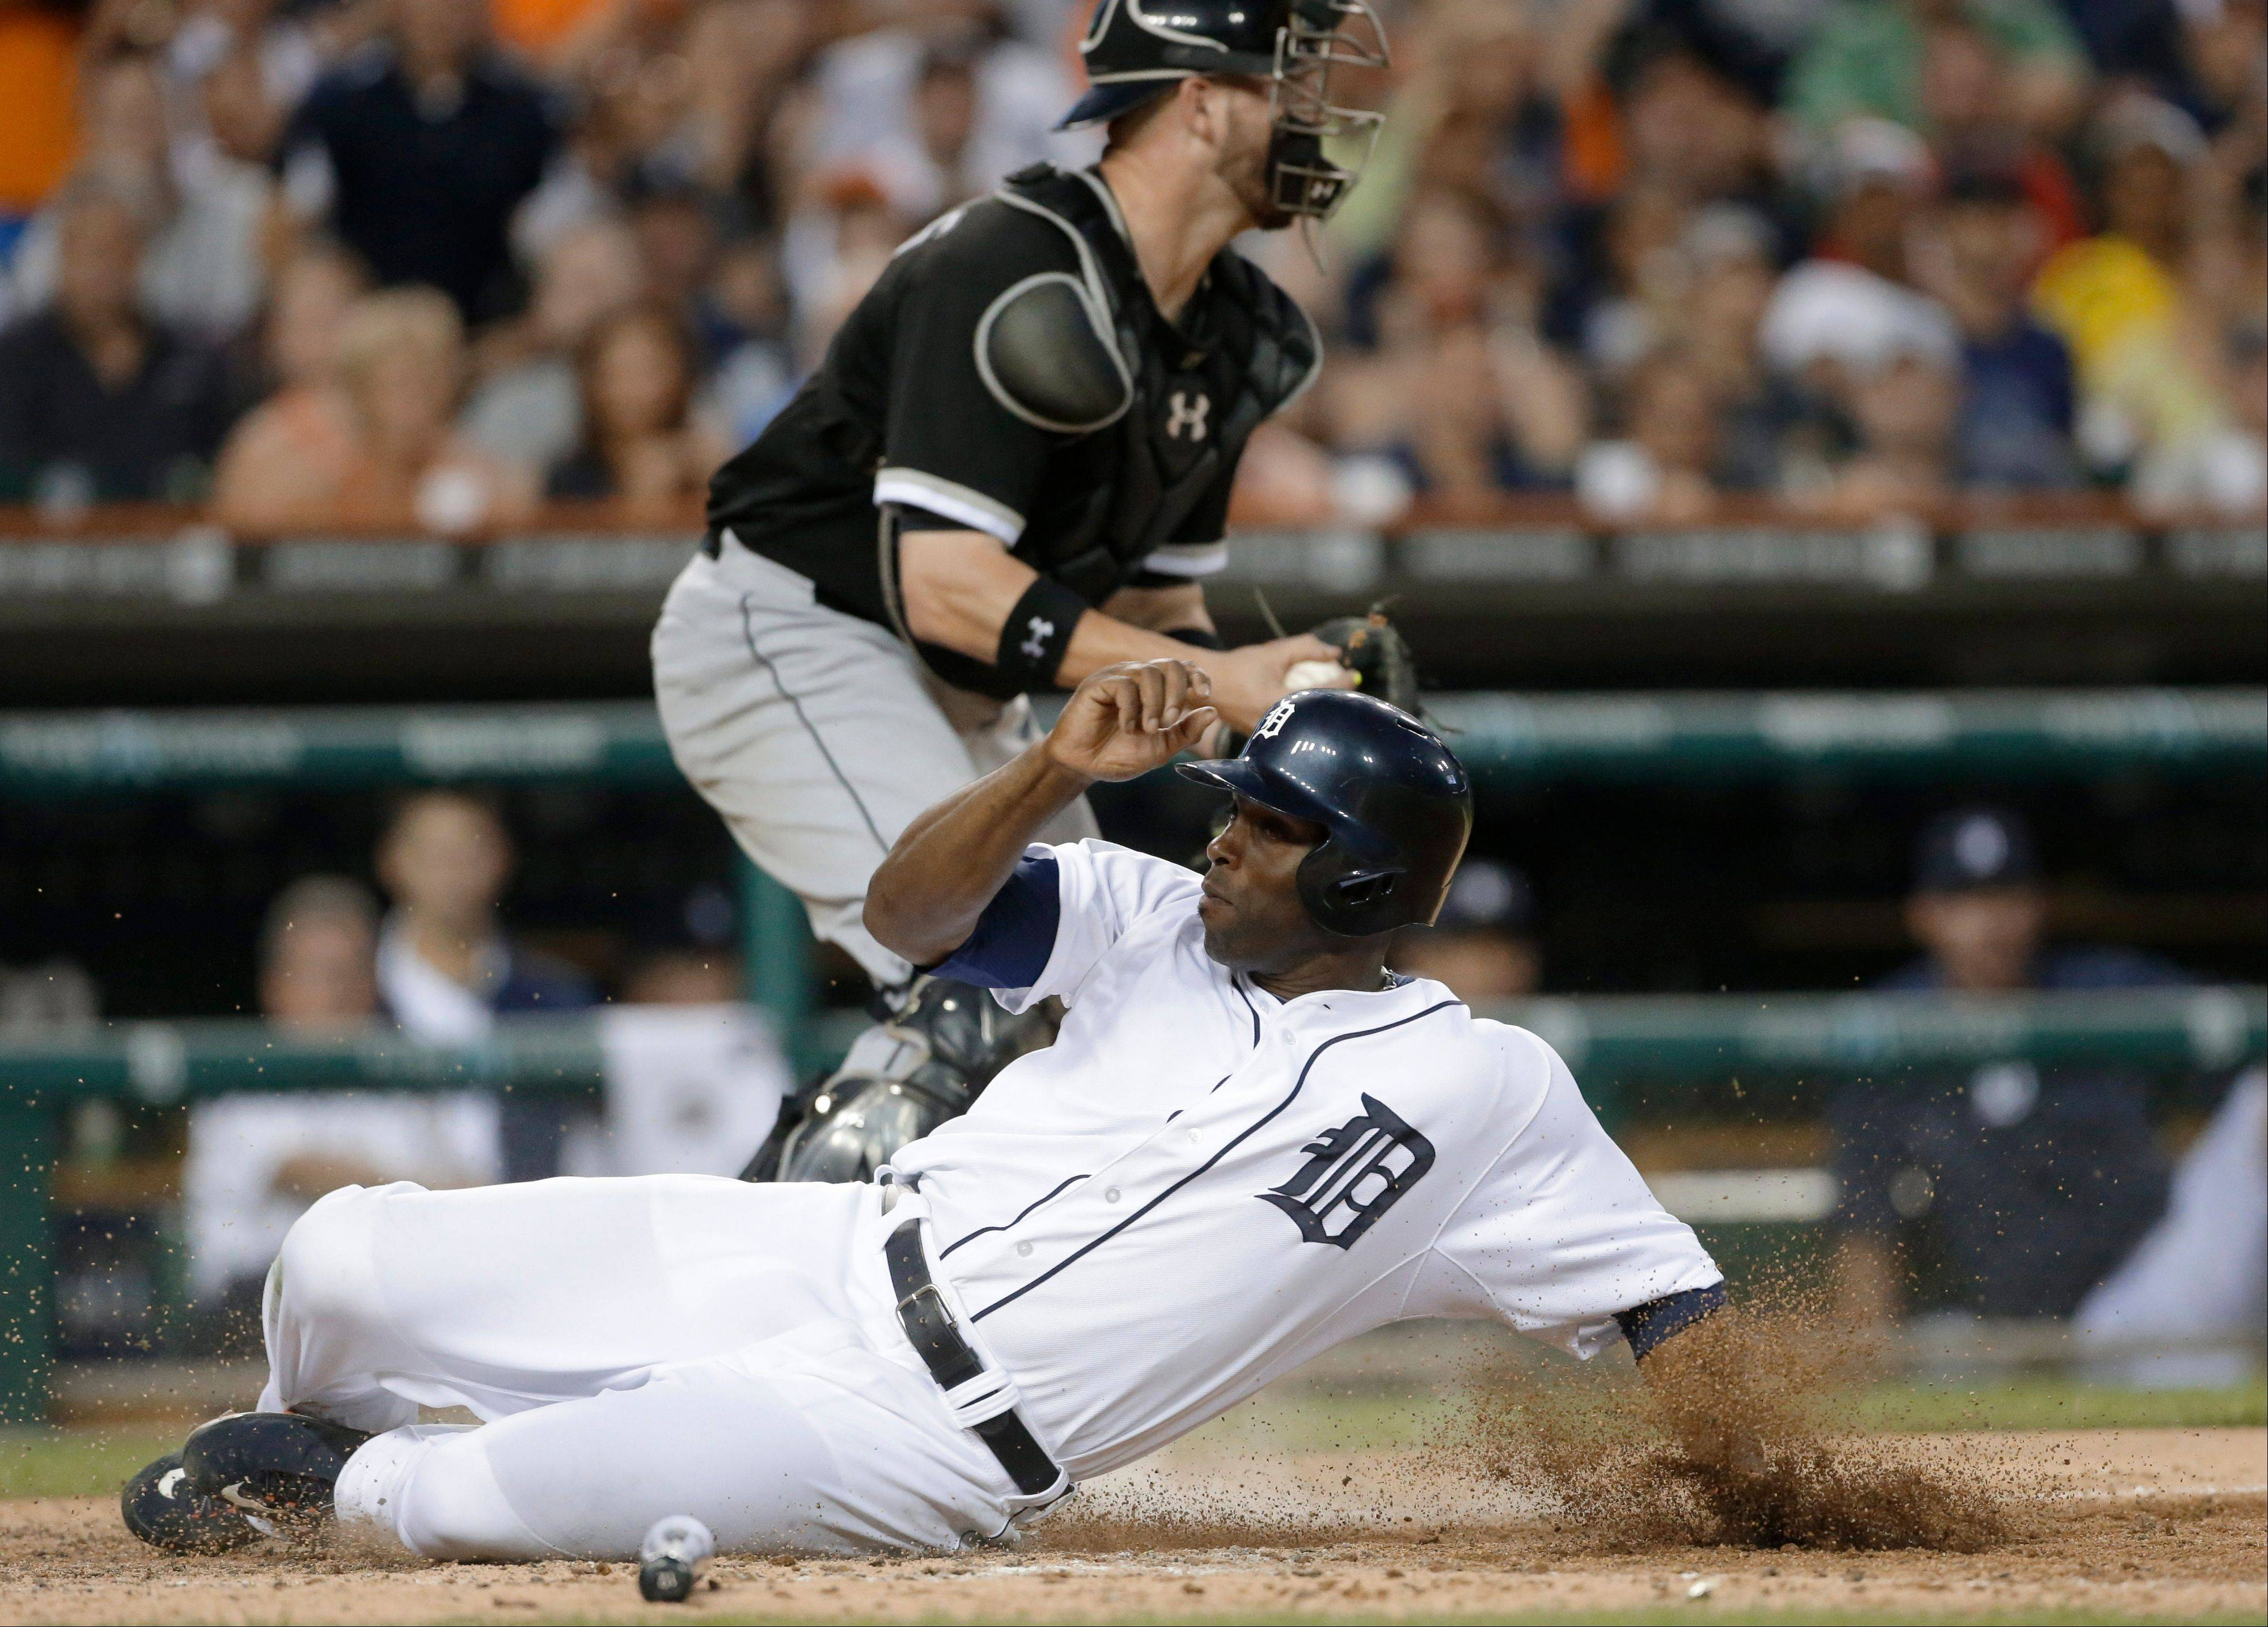 Detroit Tigers' Torii Hunter beats the throw to Chicago White Sox catcher Tyler Flowers from left fielder Dayan Viciedo and scores from second on a single by Prince Fielder during the sixth inning of a baseball game in Detroit, Wednesday, July 10, 2013. (AP Photo/Carlos Osorio)